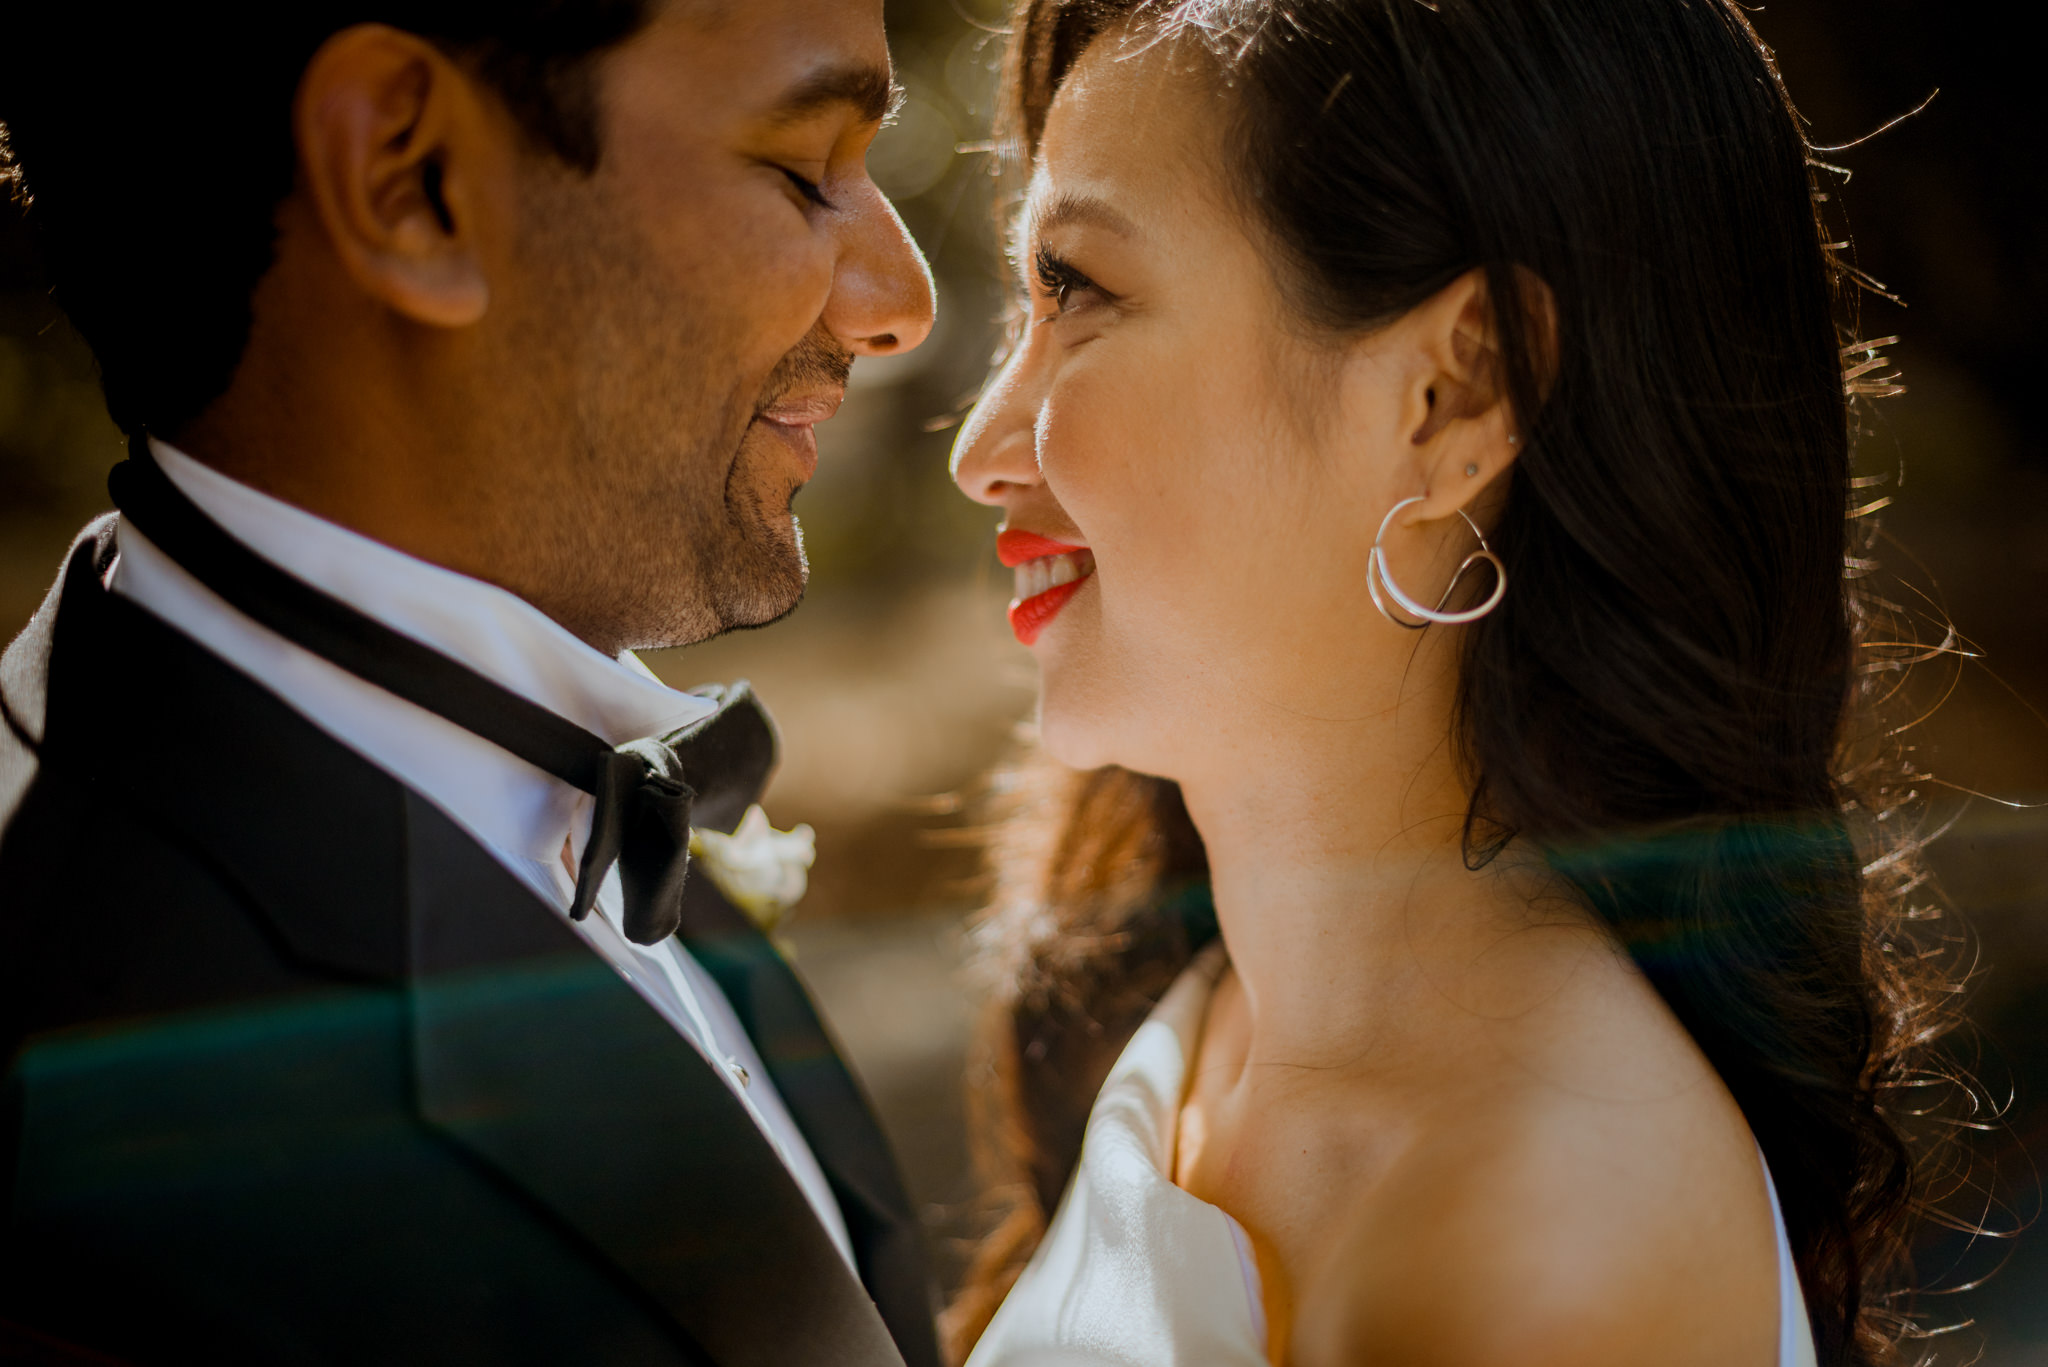 An asian bride smiles and closely stares at her husband